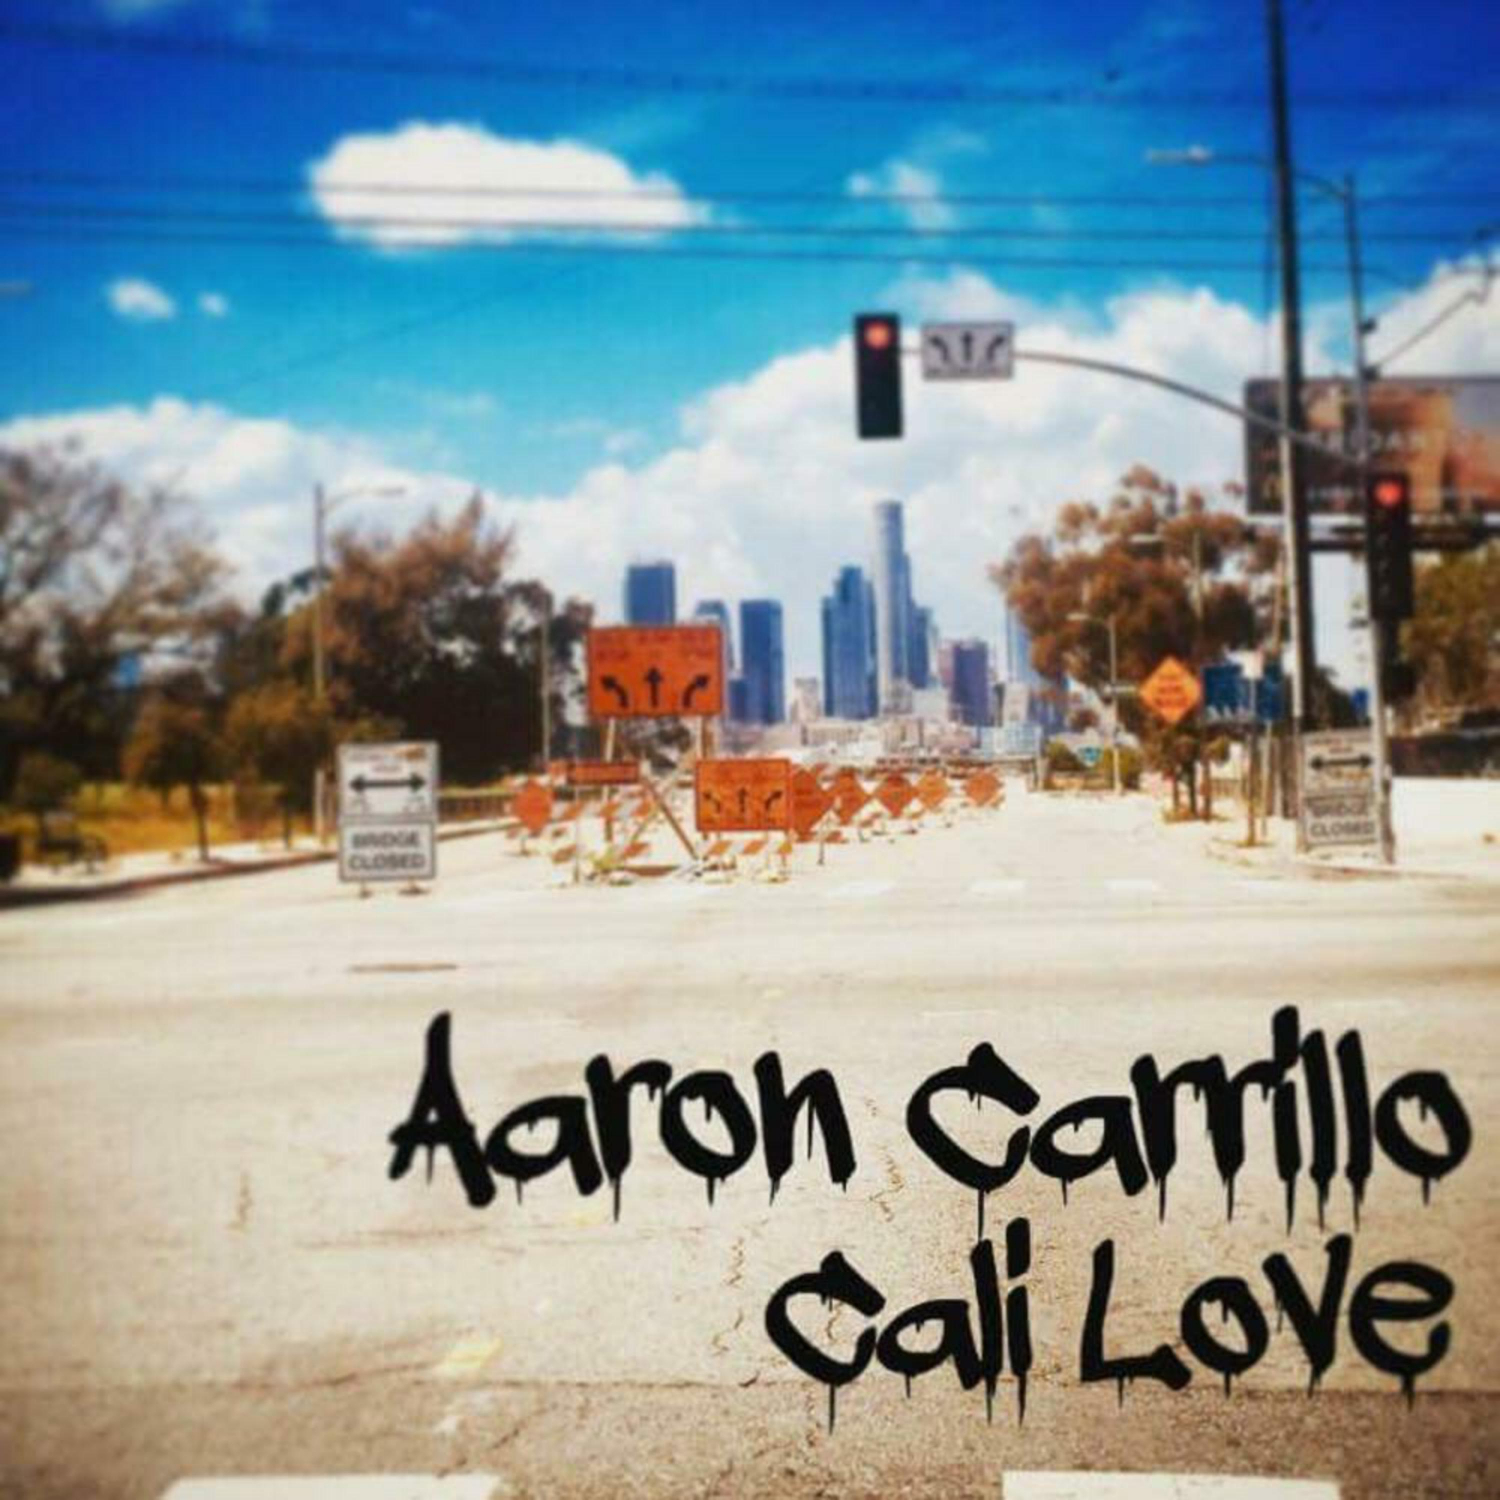 Aaron Carrillo - Cali Love (Original Mix)